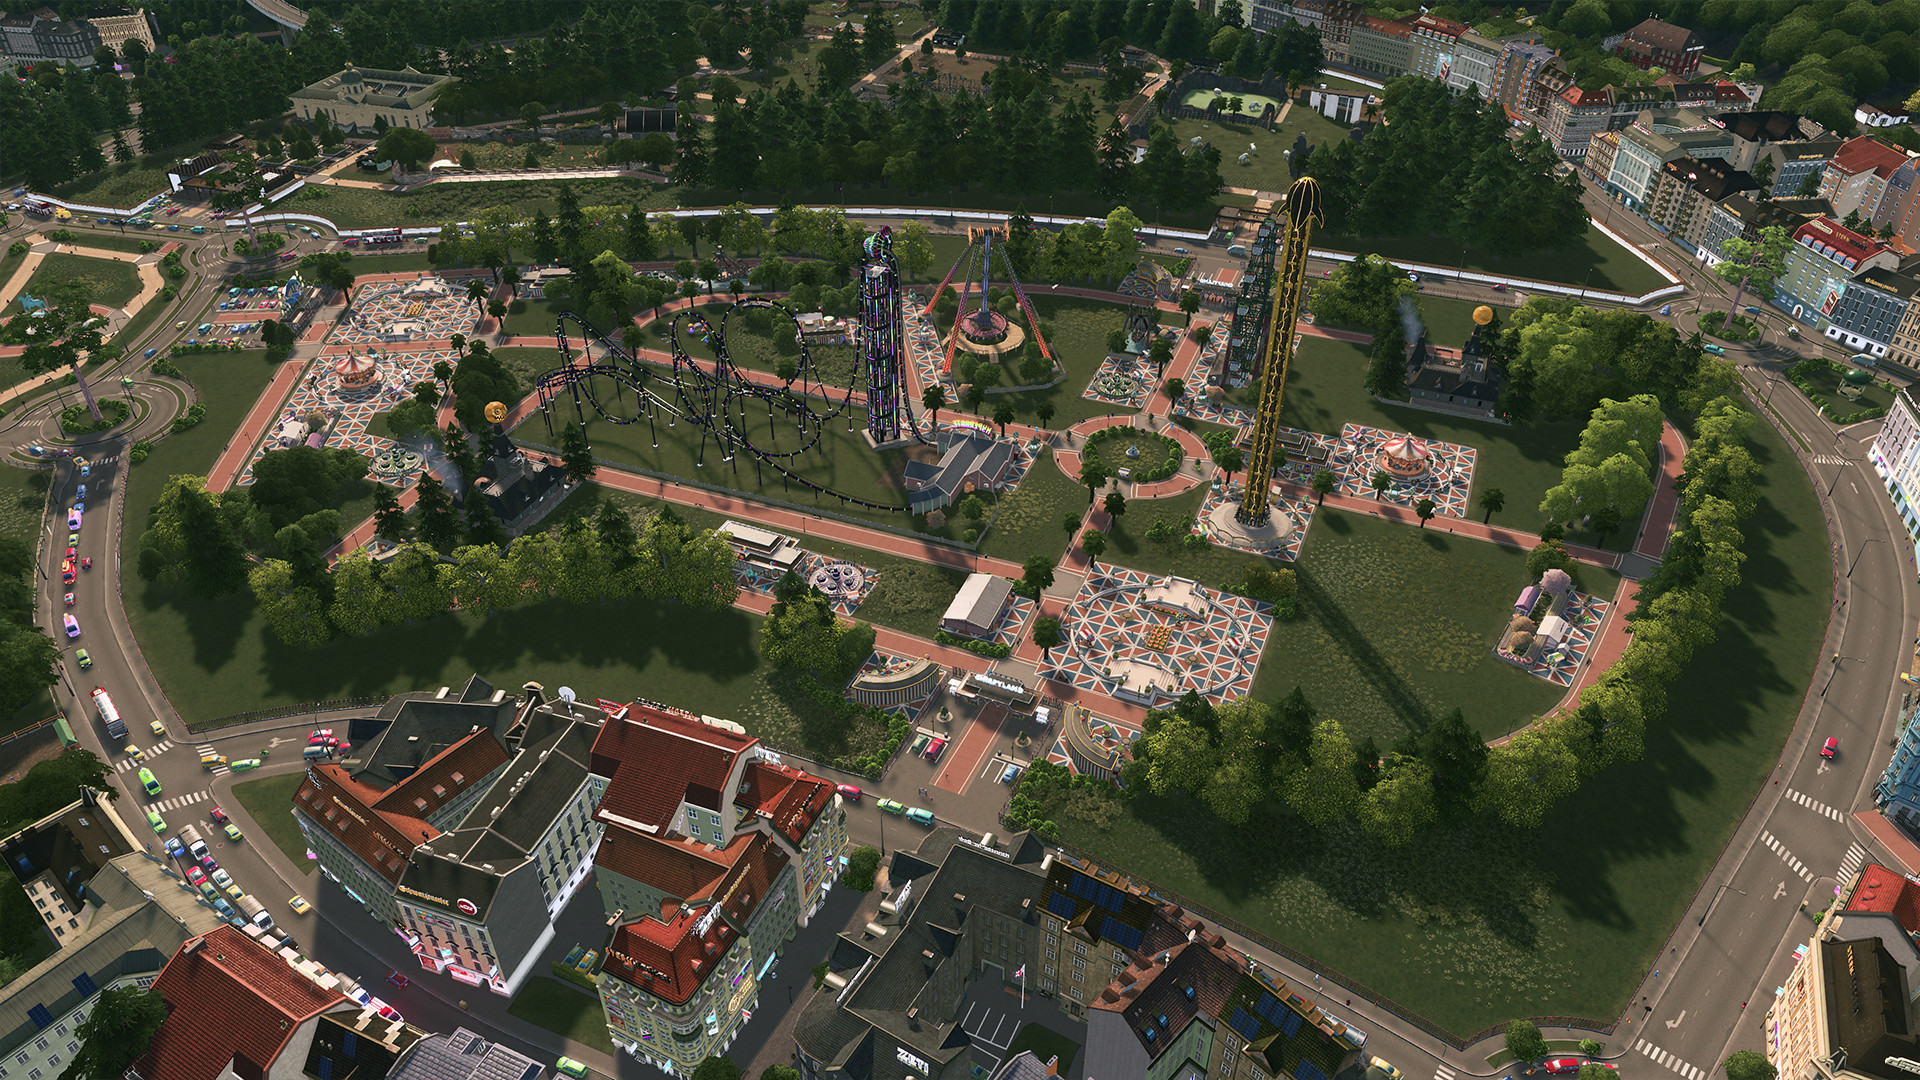 Cities: Skylines new expansion releasing in May